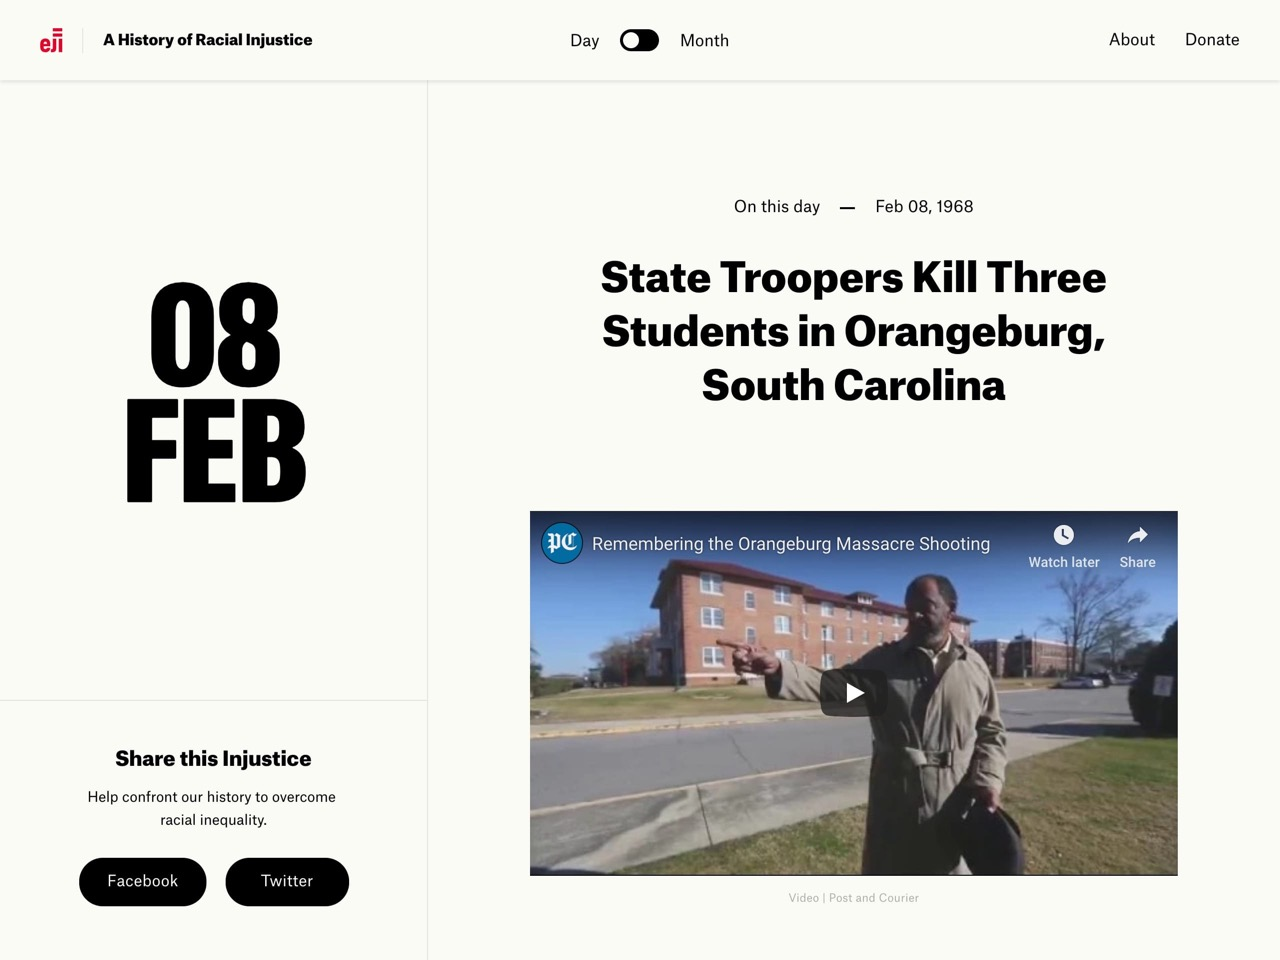 On feb 08  1968  state troopers kill three students in orangeburg  south carolina